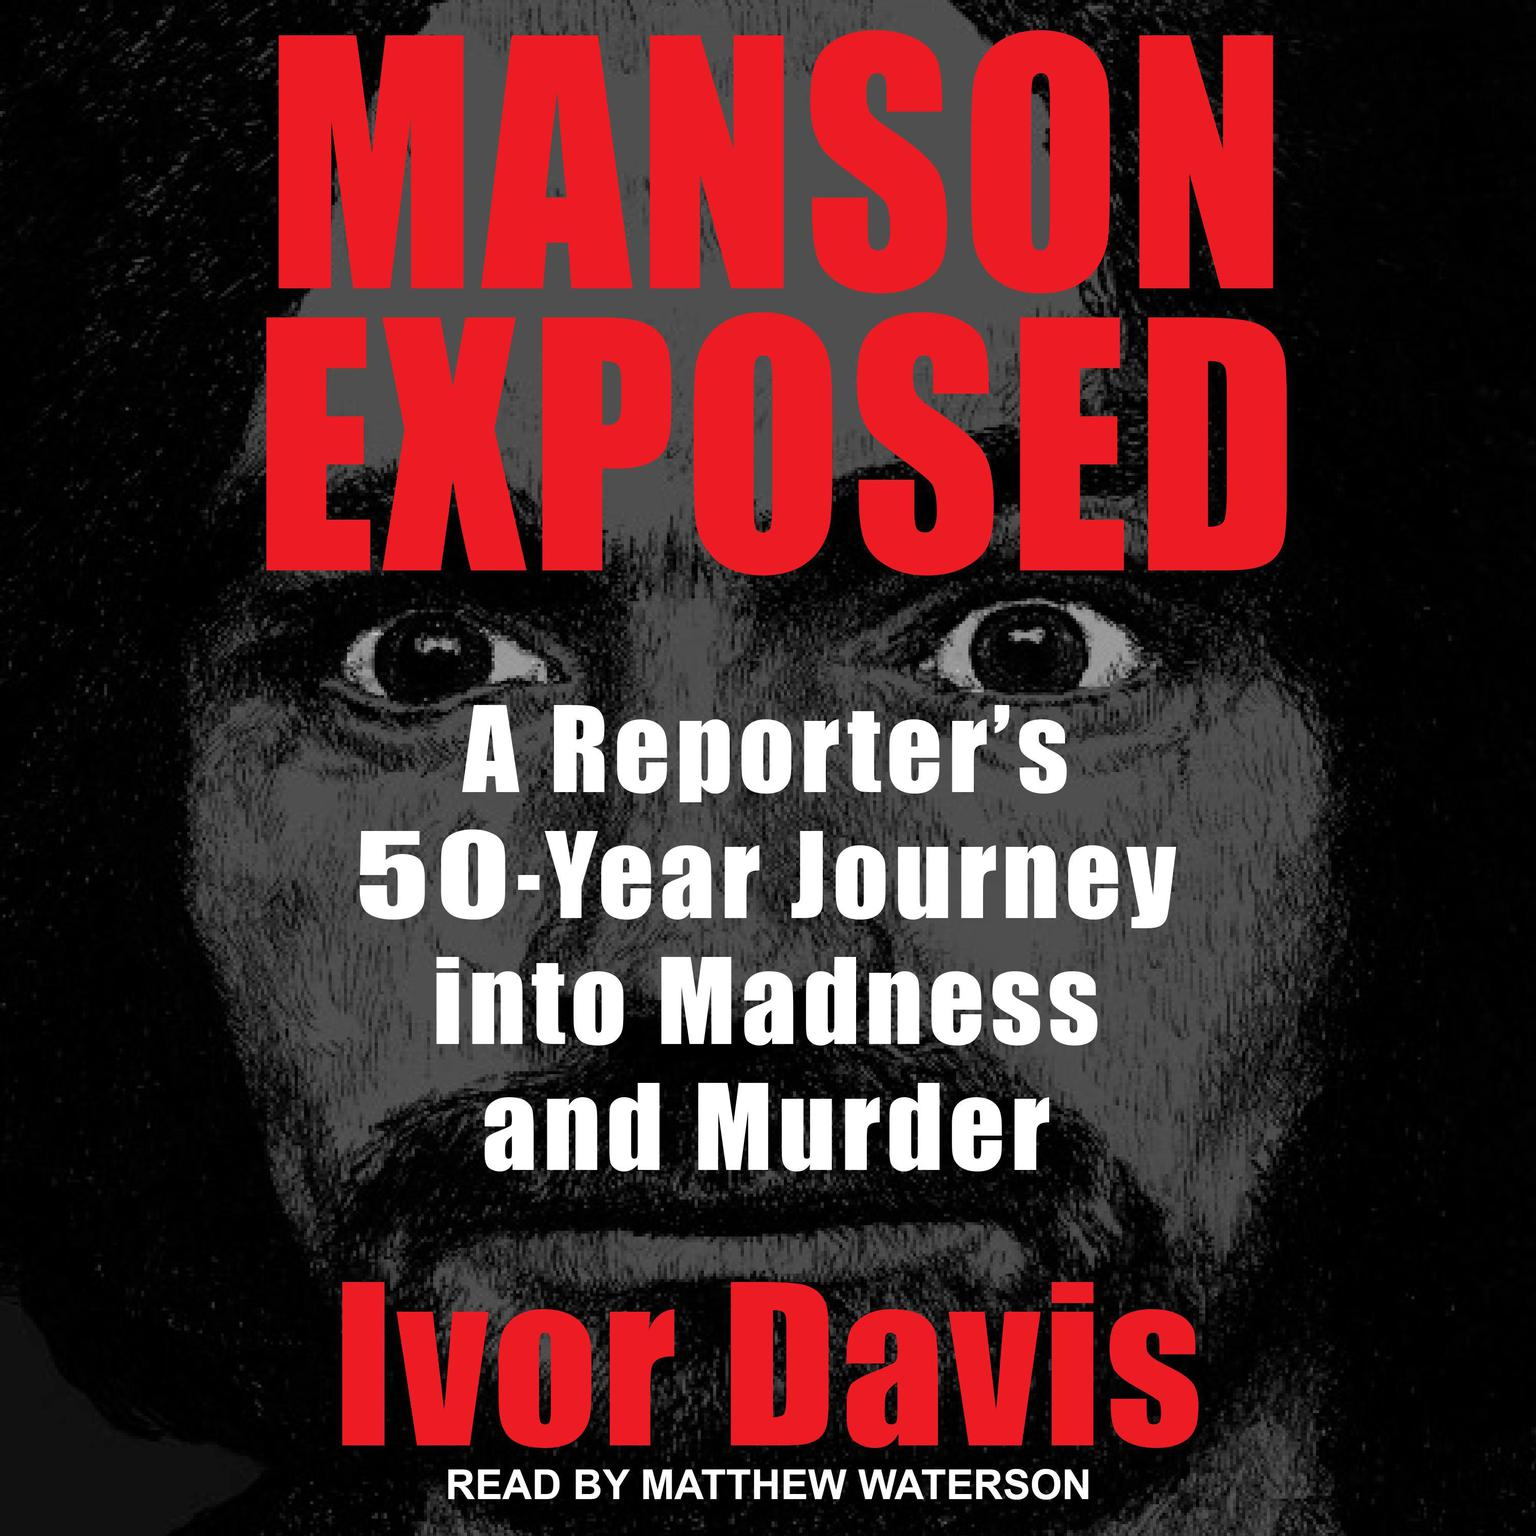 Printable Manson Exposed: A Reporter's 50-Year Journey into Madness and Murder Audiobook Cover Art